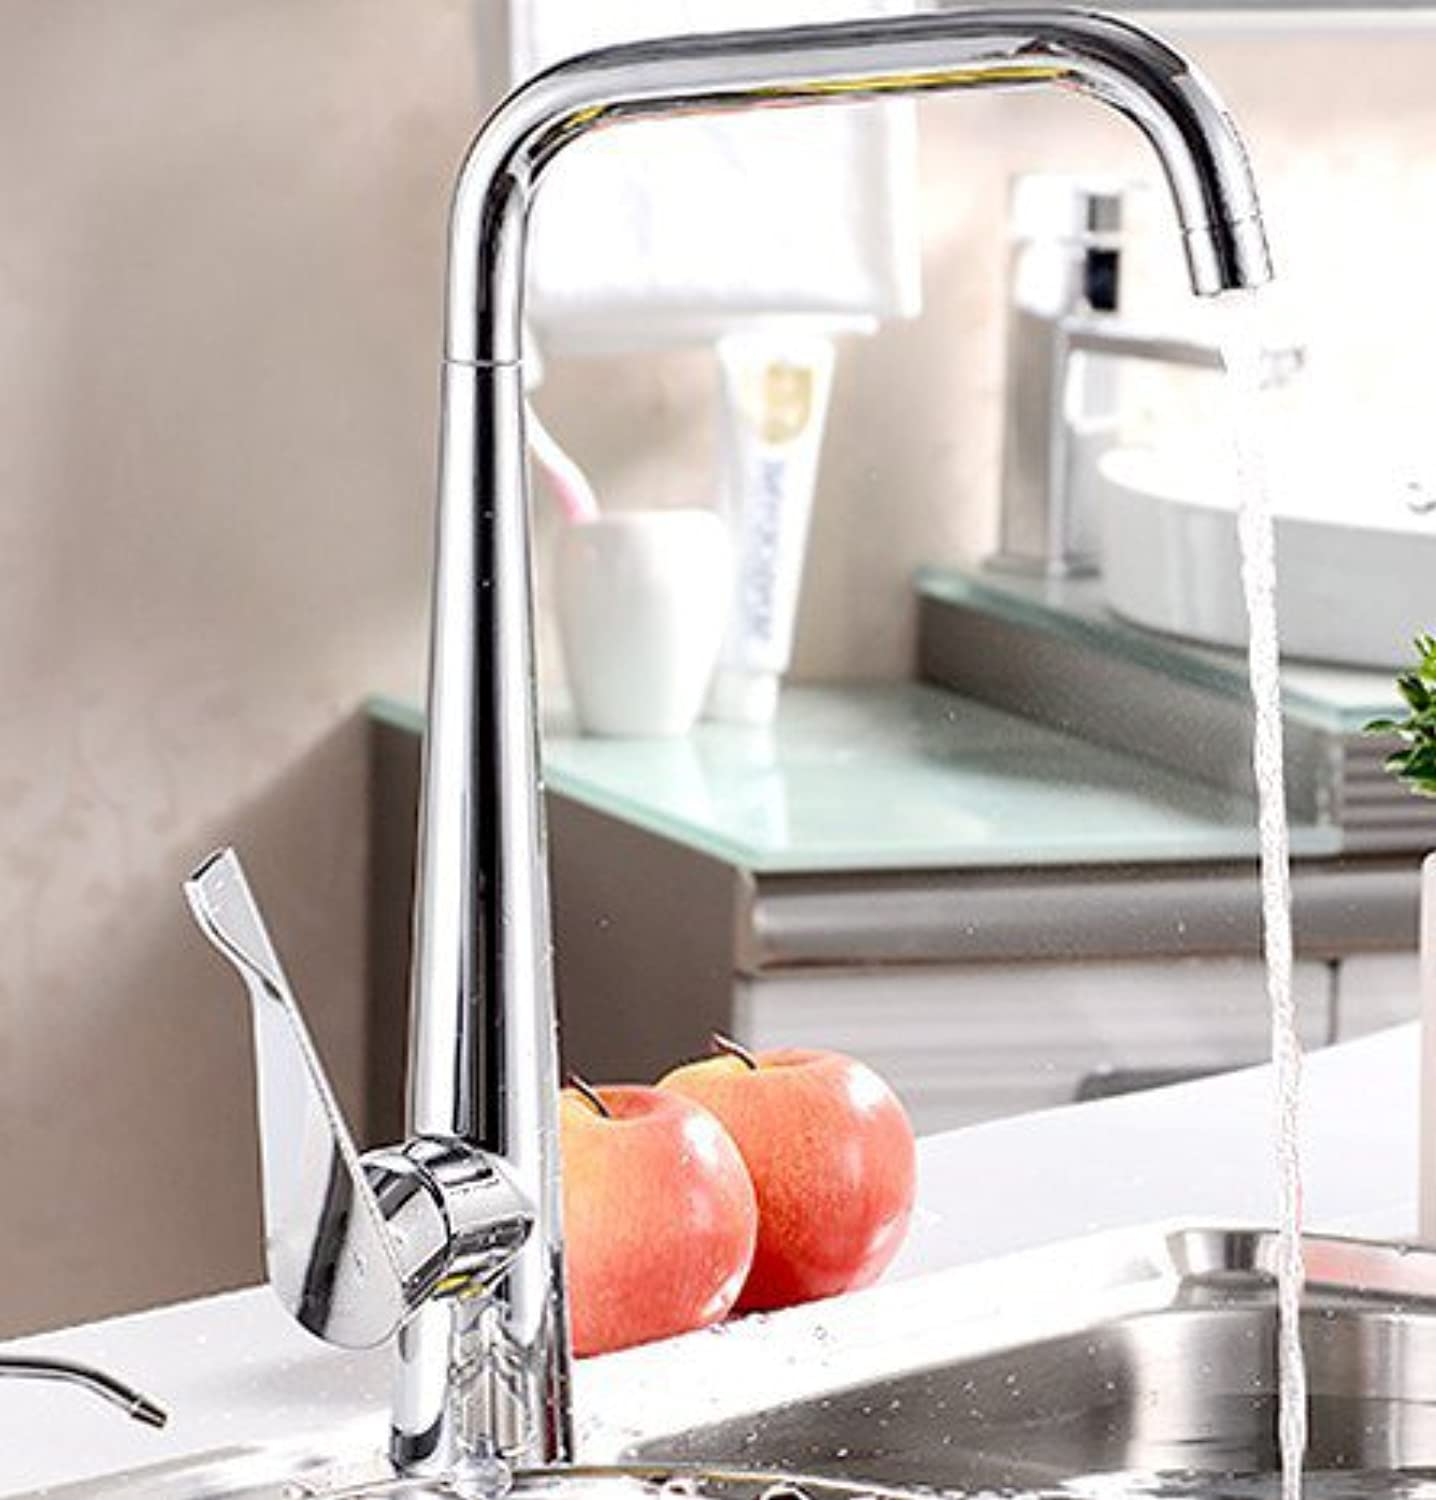 Gyps Faucet Basin Mixer Tap Waterfall Faucet Antique Bathroom The copper cold water taps for cold water kitchen faucets double sink dish washing basin faucet single handle to redate